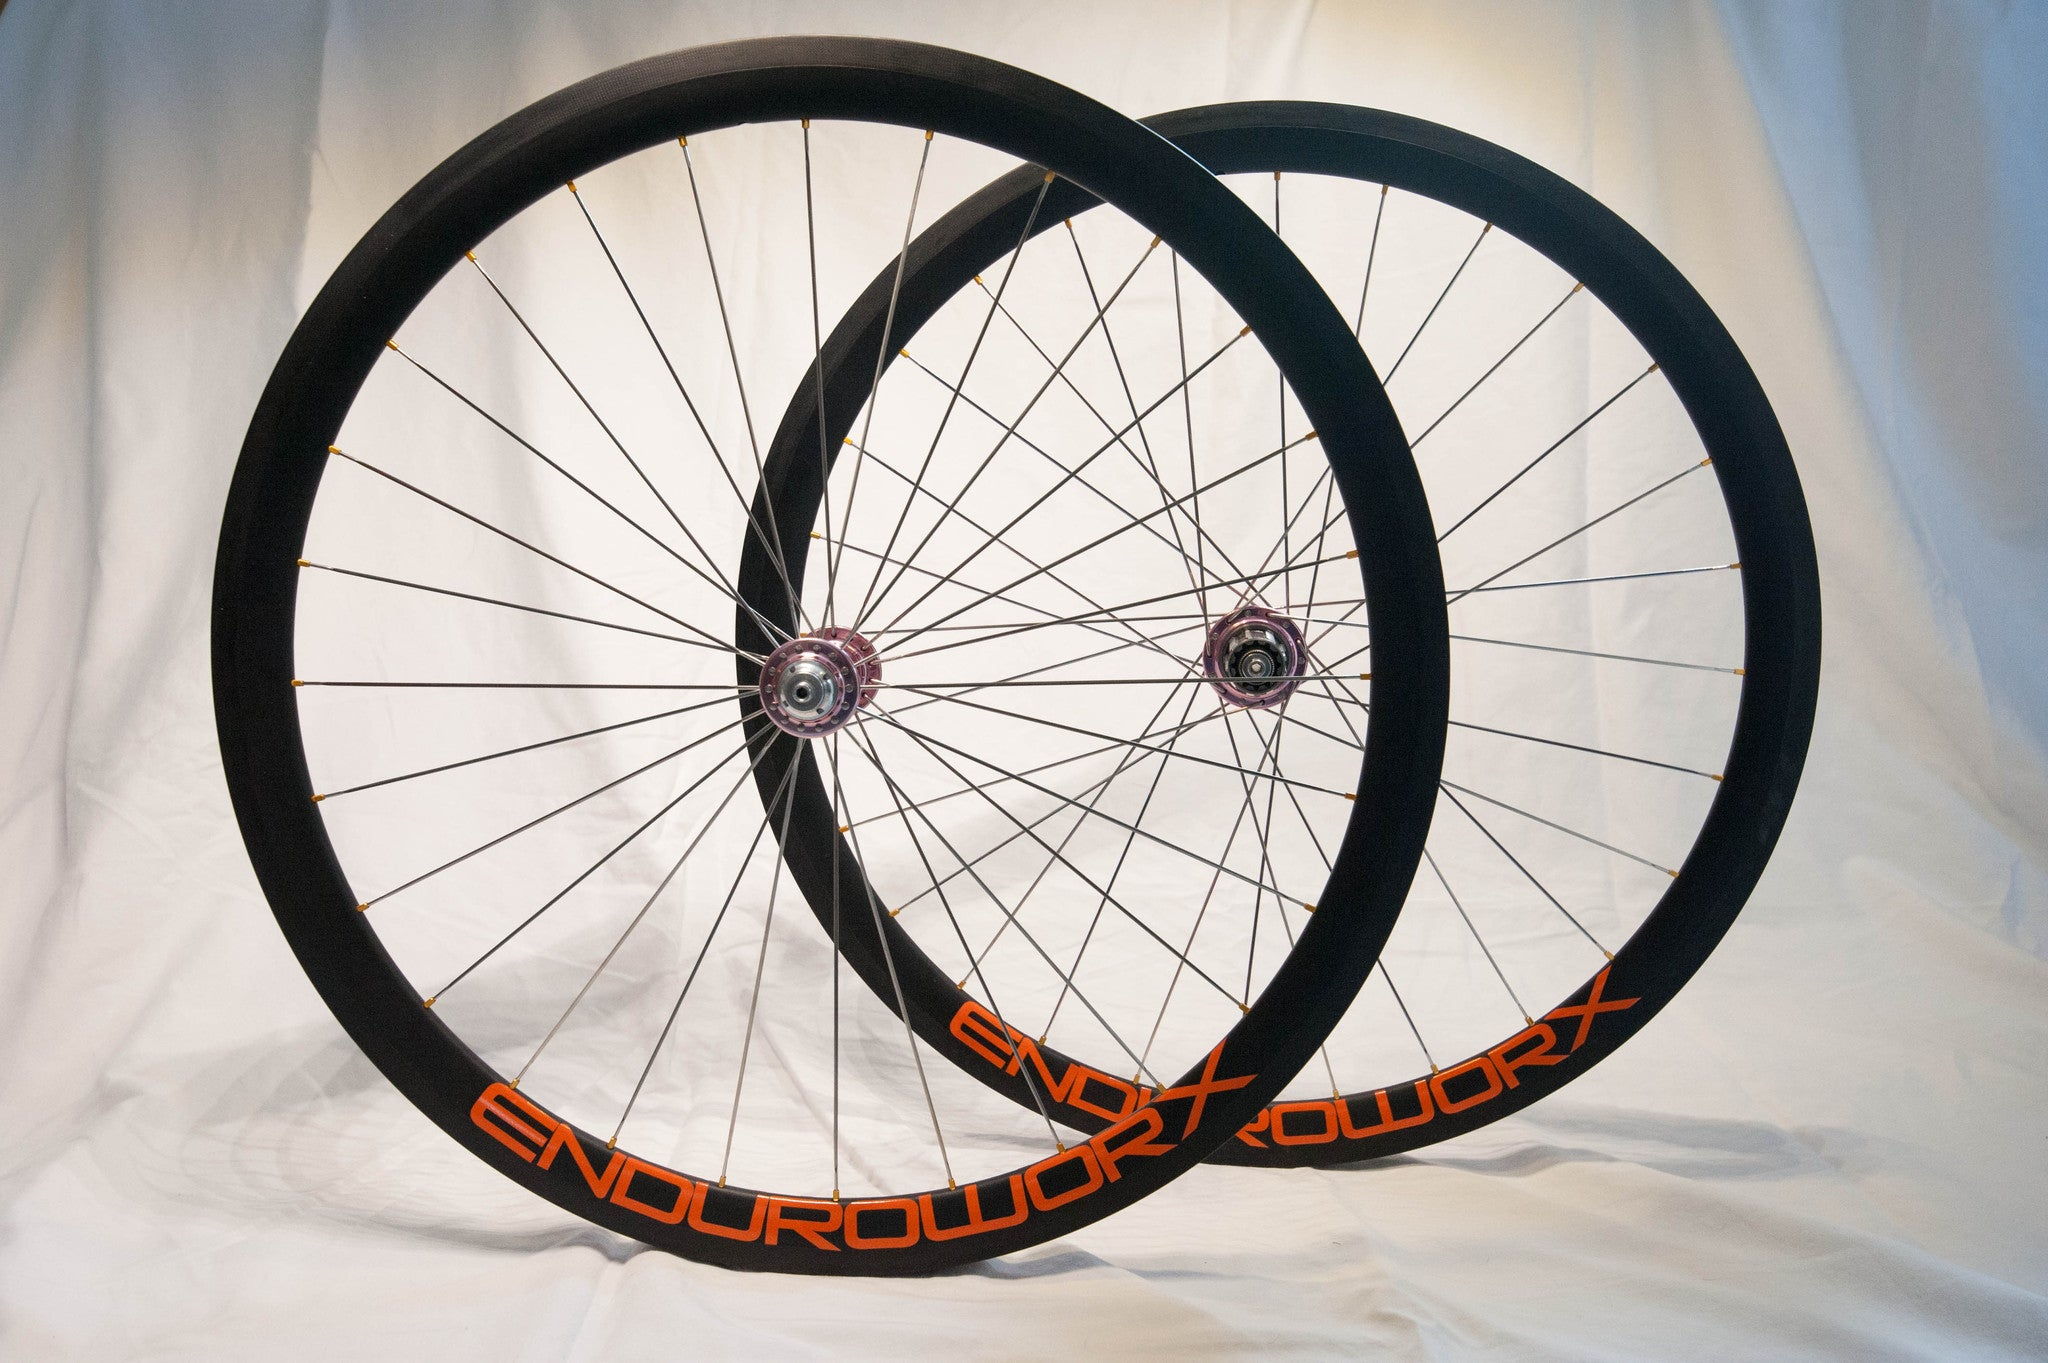 Carbon Road / 25mm wide / DT-Swiss 240s hubs - Enduroworx